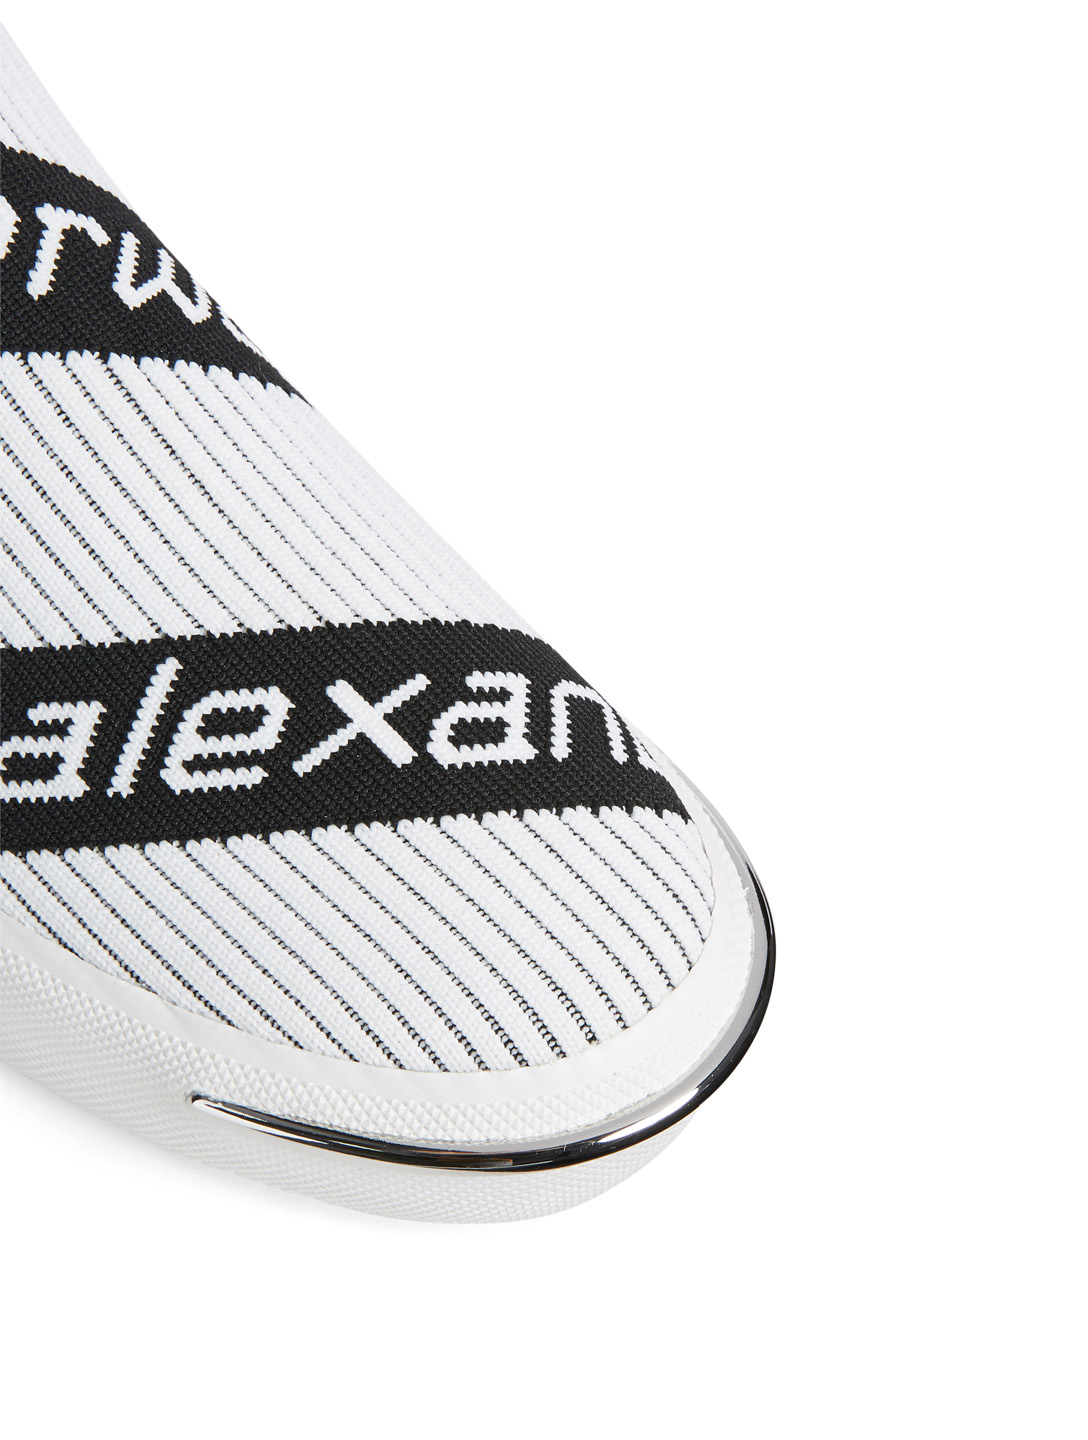 ALEXANDER WANG Pia Knit Logo High-Top Sneakers Women's White